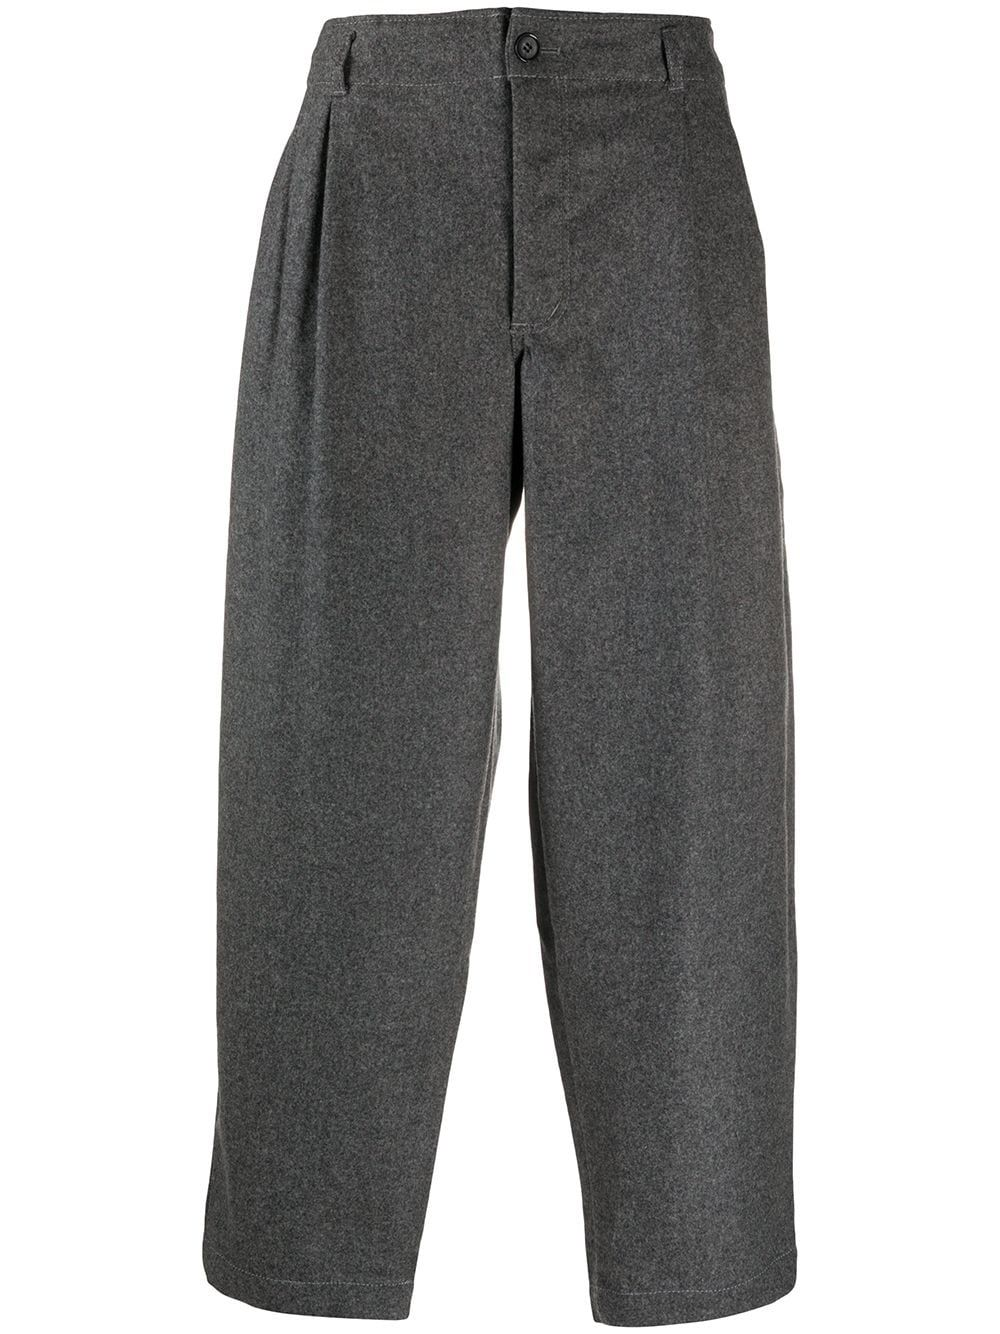 Grey wool cropped loose fit trousers from COMME DES GARÇONS SHIRT featuring cropped leg, loose fit and tapered fit.